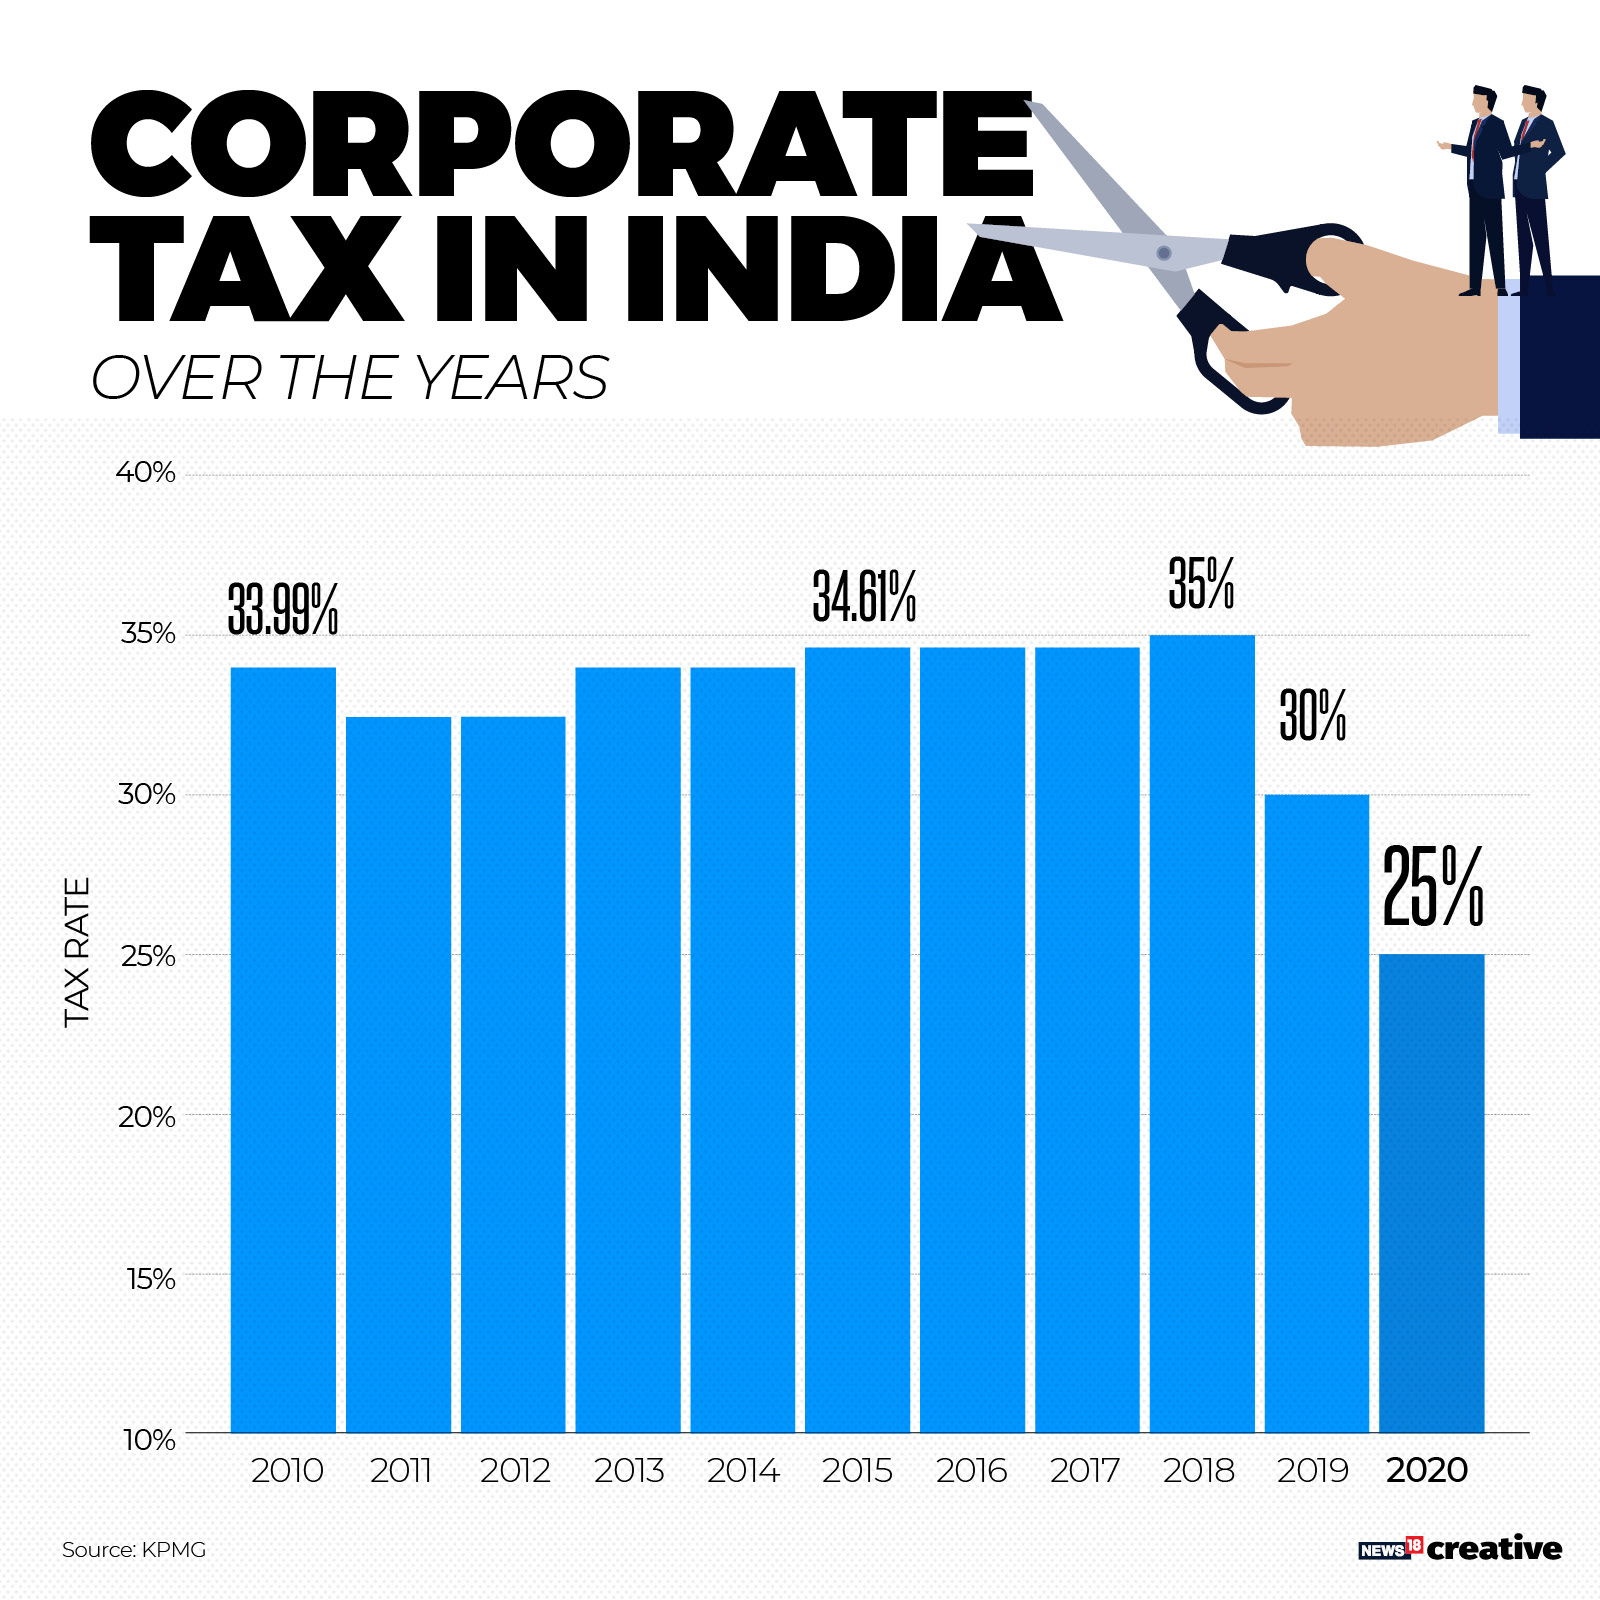 Industry stock market experts term Sitharamans corporate tax cut revolutionary say will make Indian firms globally competitive